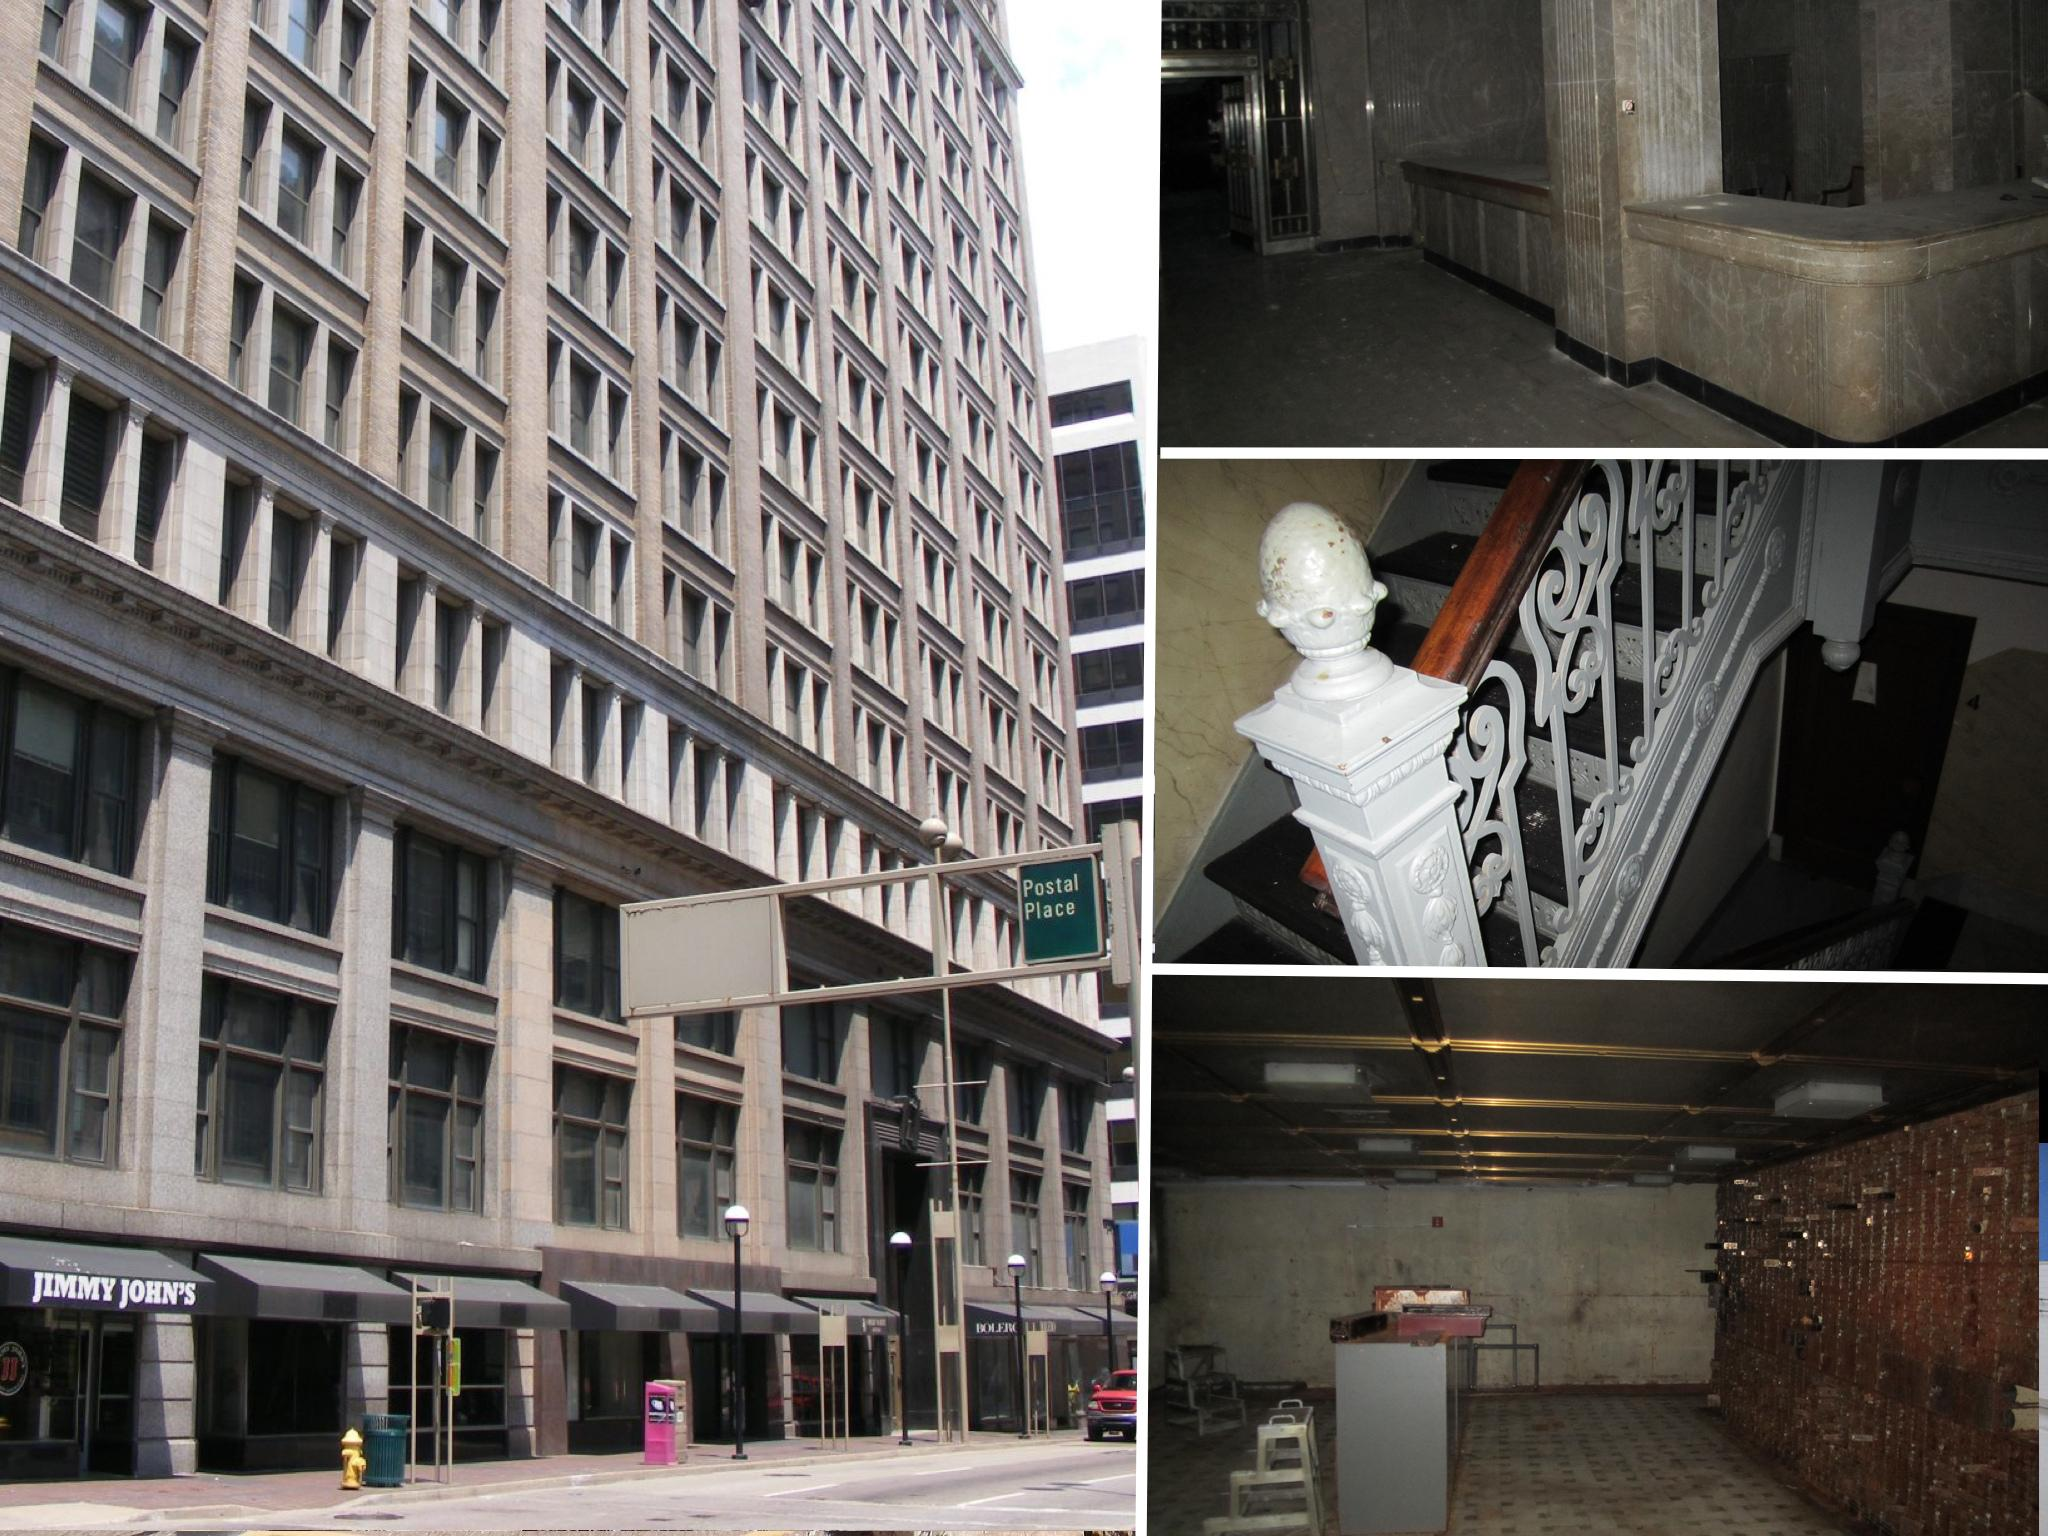 RENAISSANCE HOTEL (Before) / ADDRESS: 36 E 4th Street (45202) / CREDIT: $5,000,000 / PREVIOUSLY: Union Trust Building / Images courtesy of the Ohio Department of Taxation, CC by 2.0, with changes